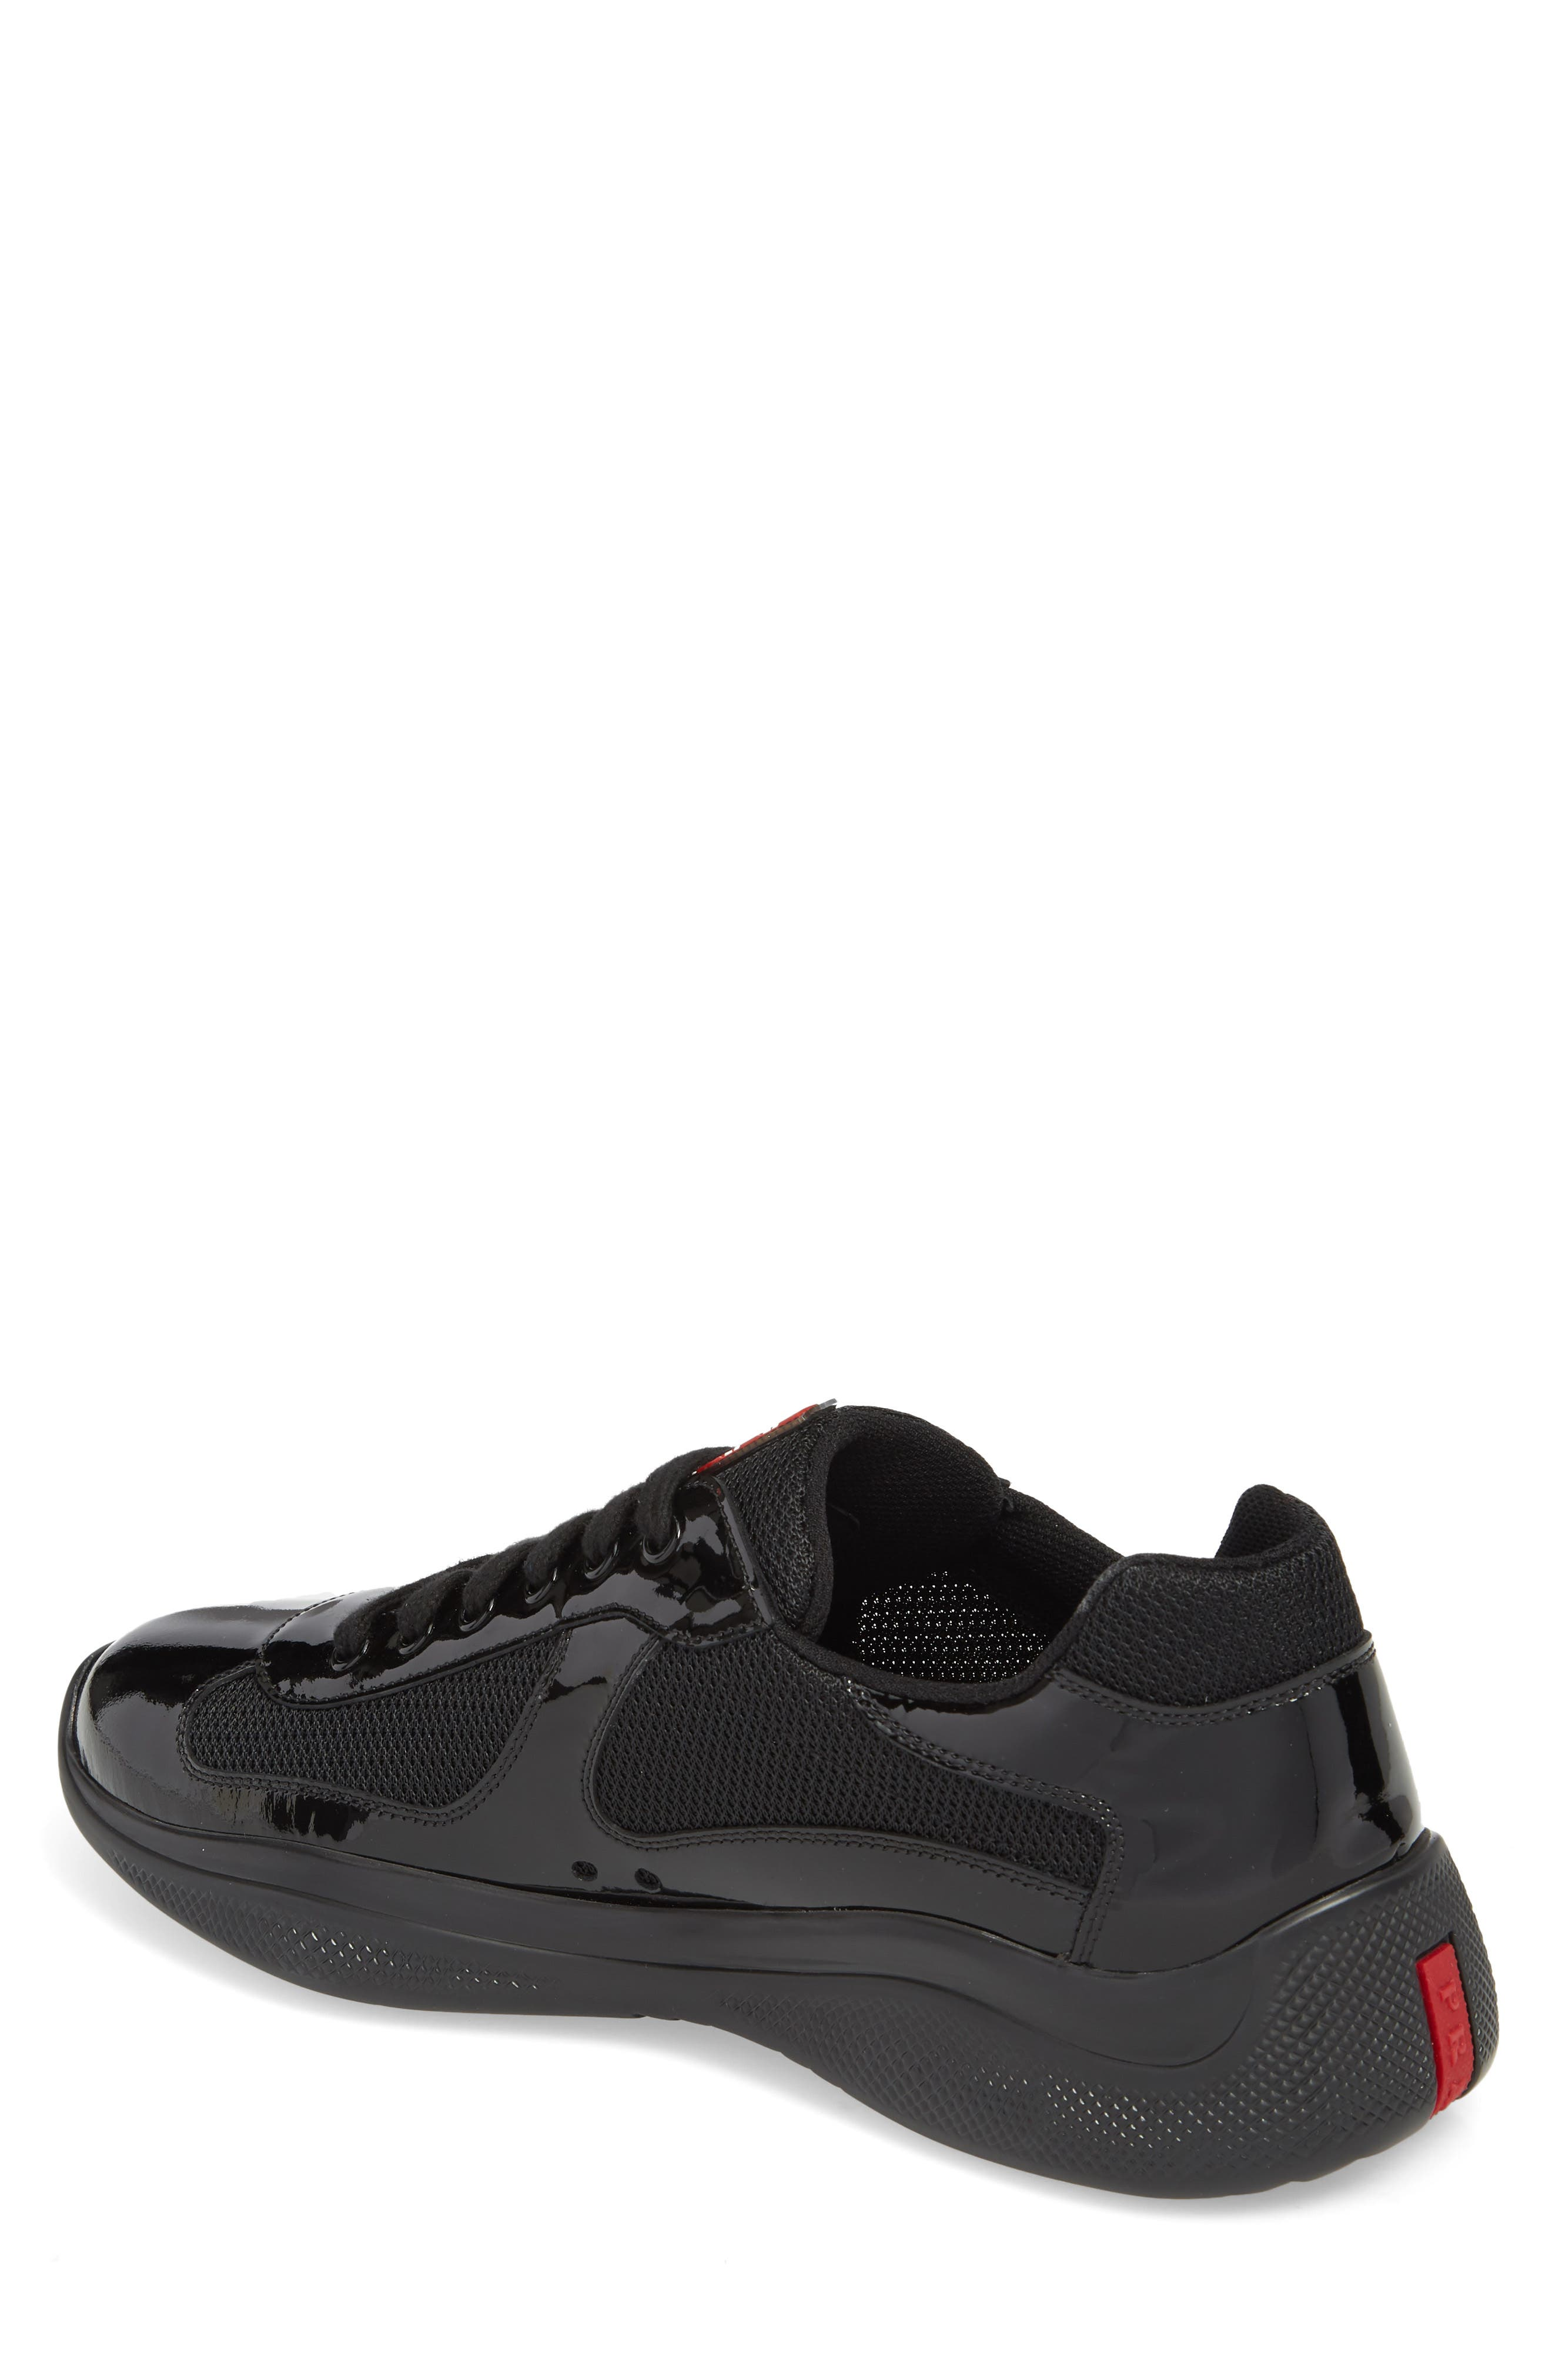 Americas Cup Sneaker,                             Alternate thumbnail 2, color,                             NERO/ ARGENTO